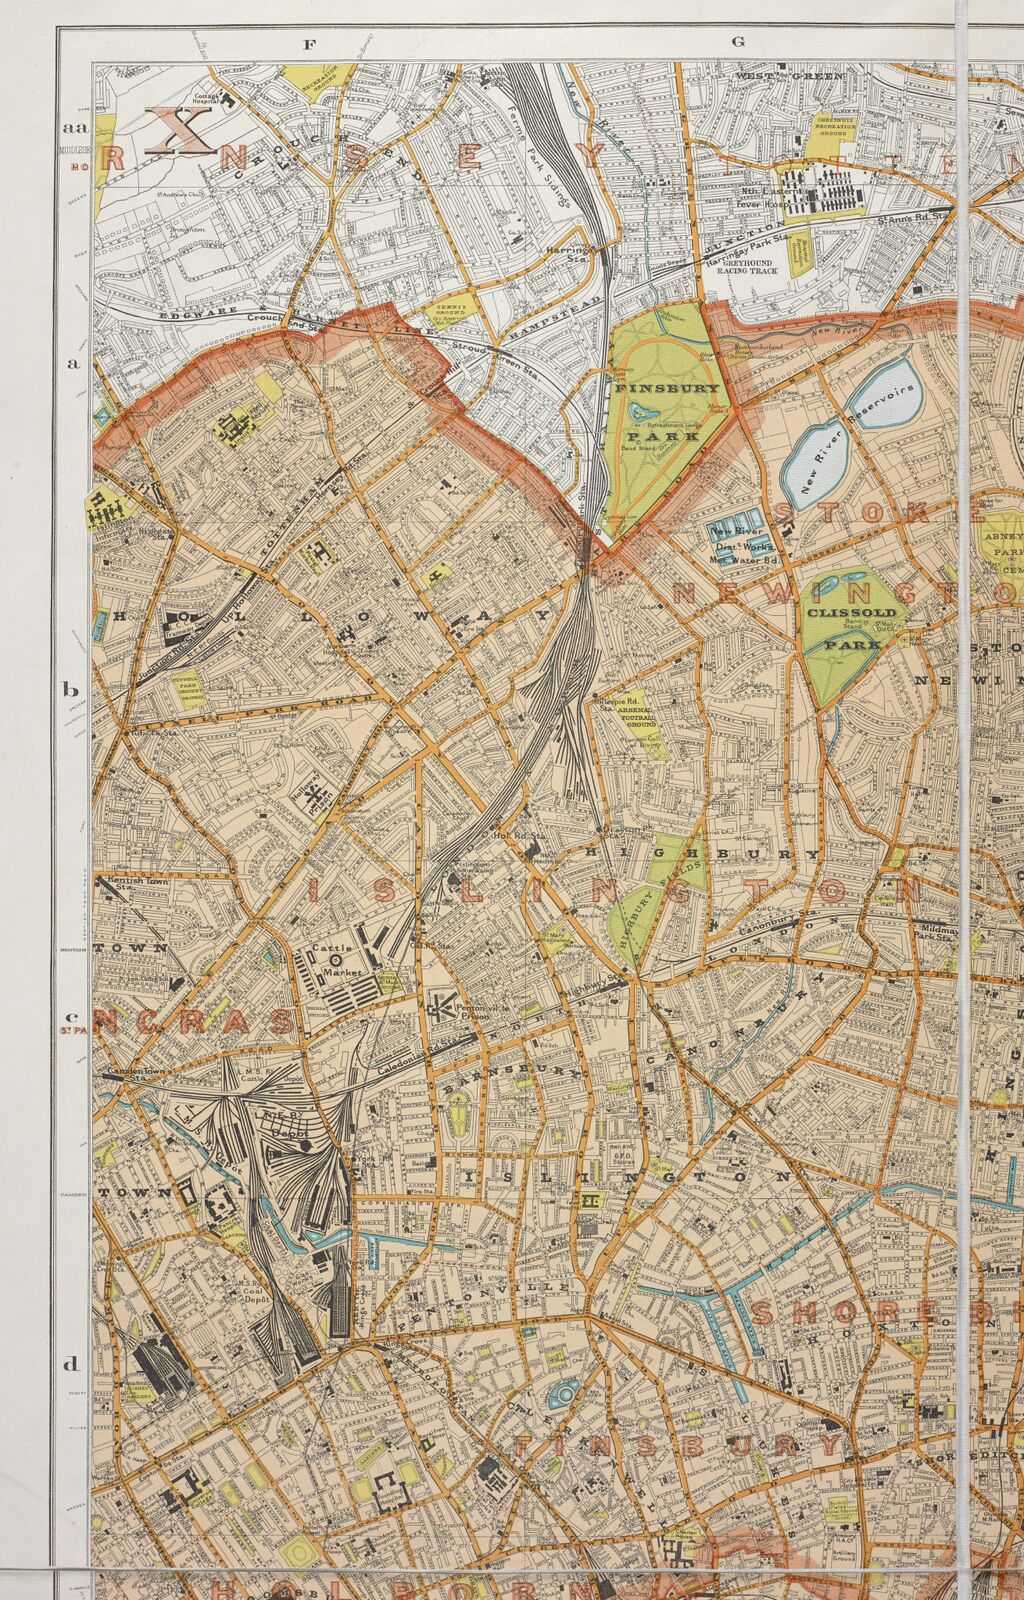 Peter Whitfield London: A Life in Maps